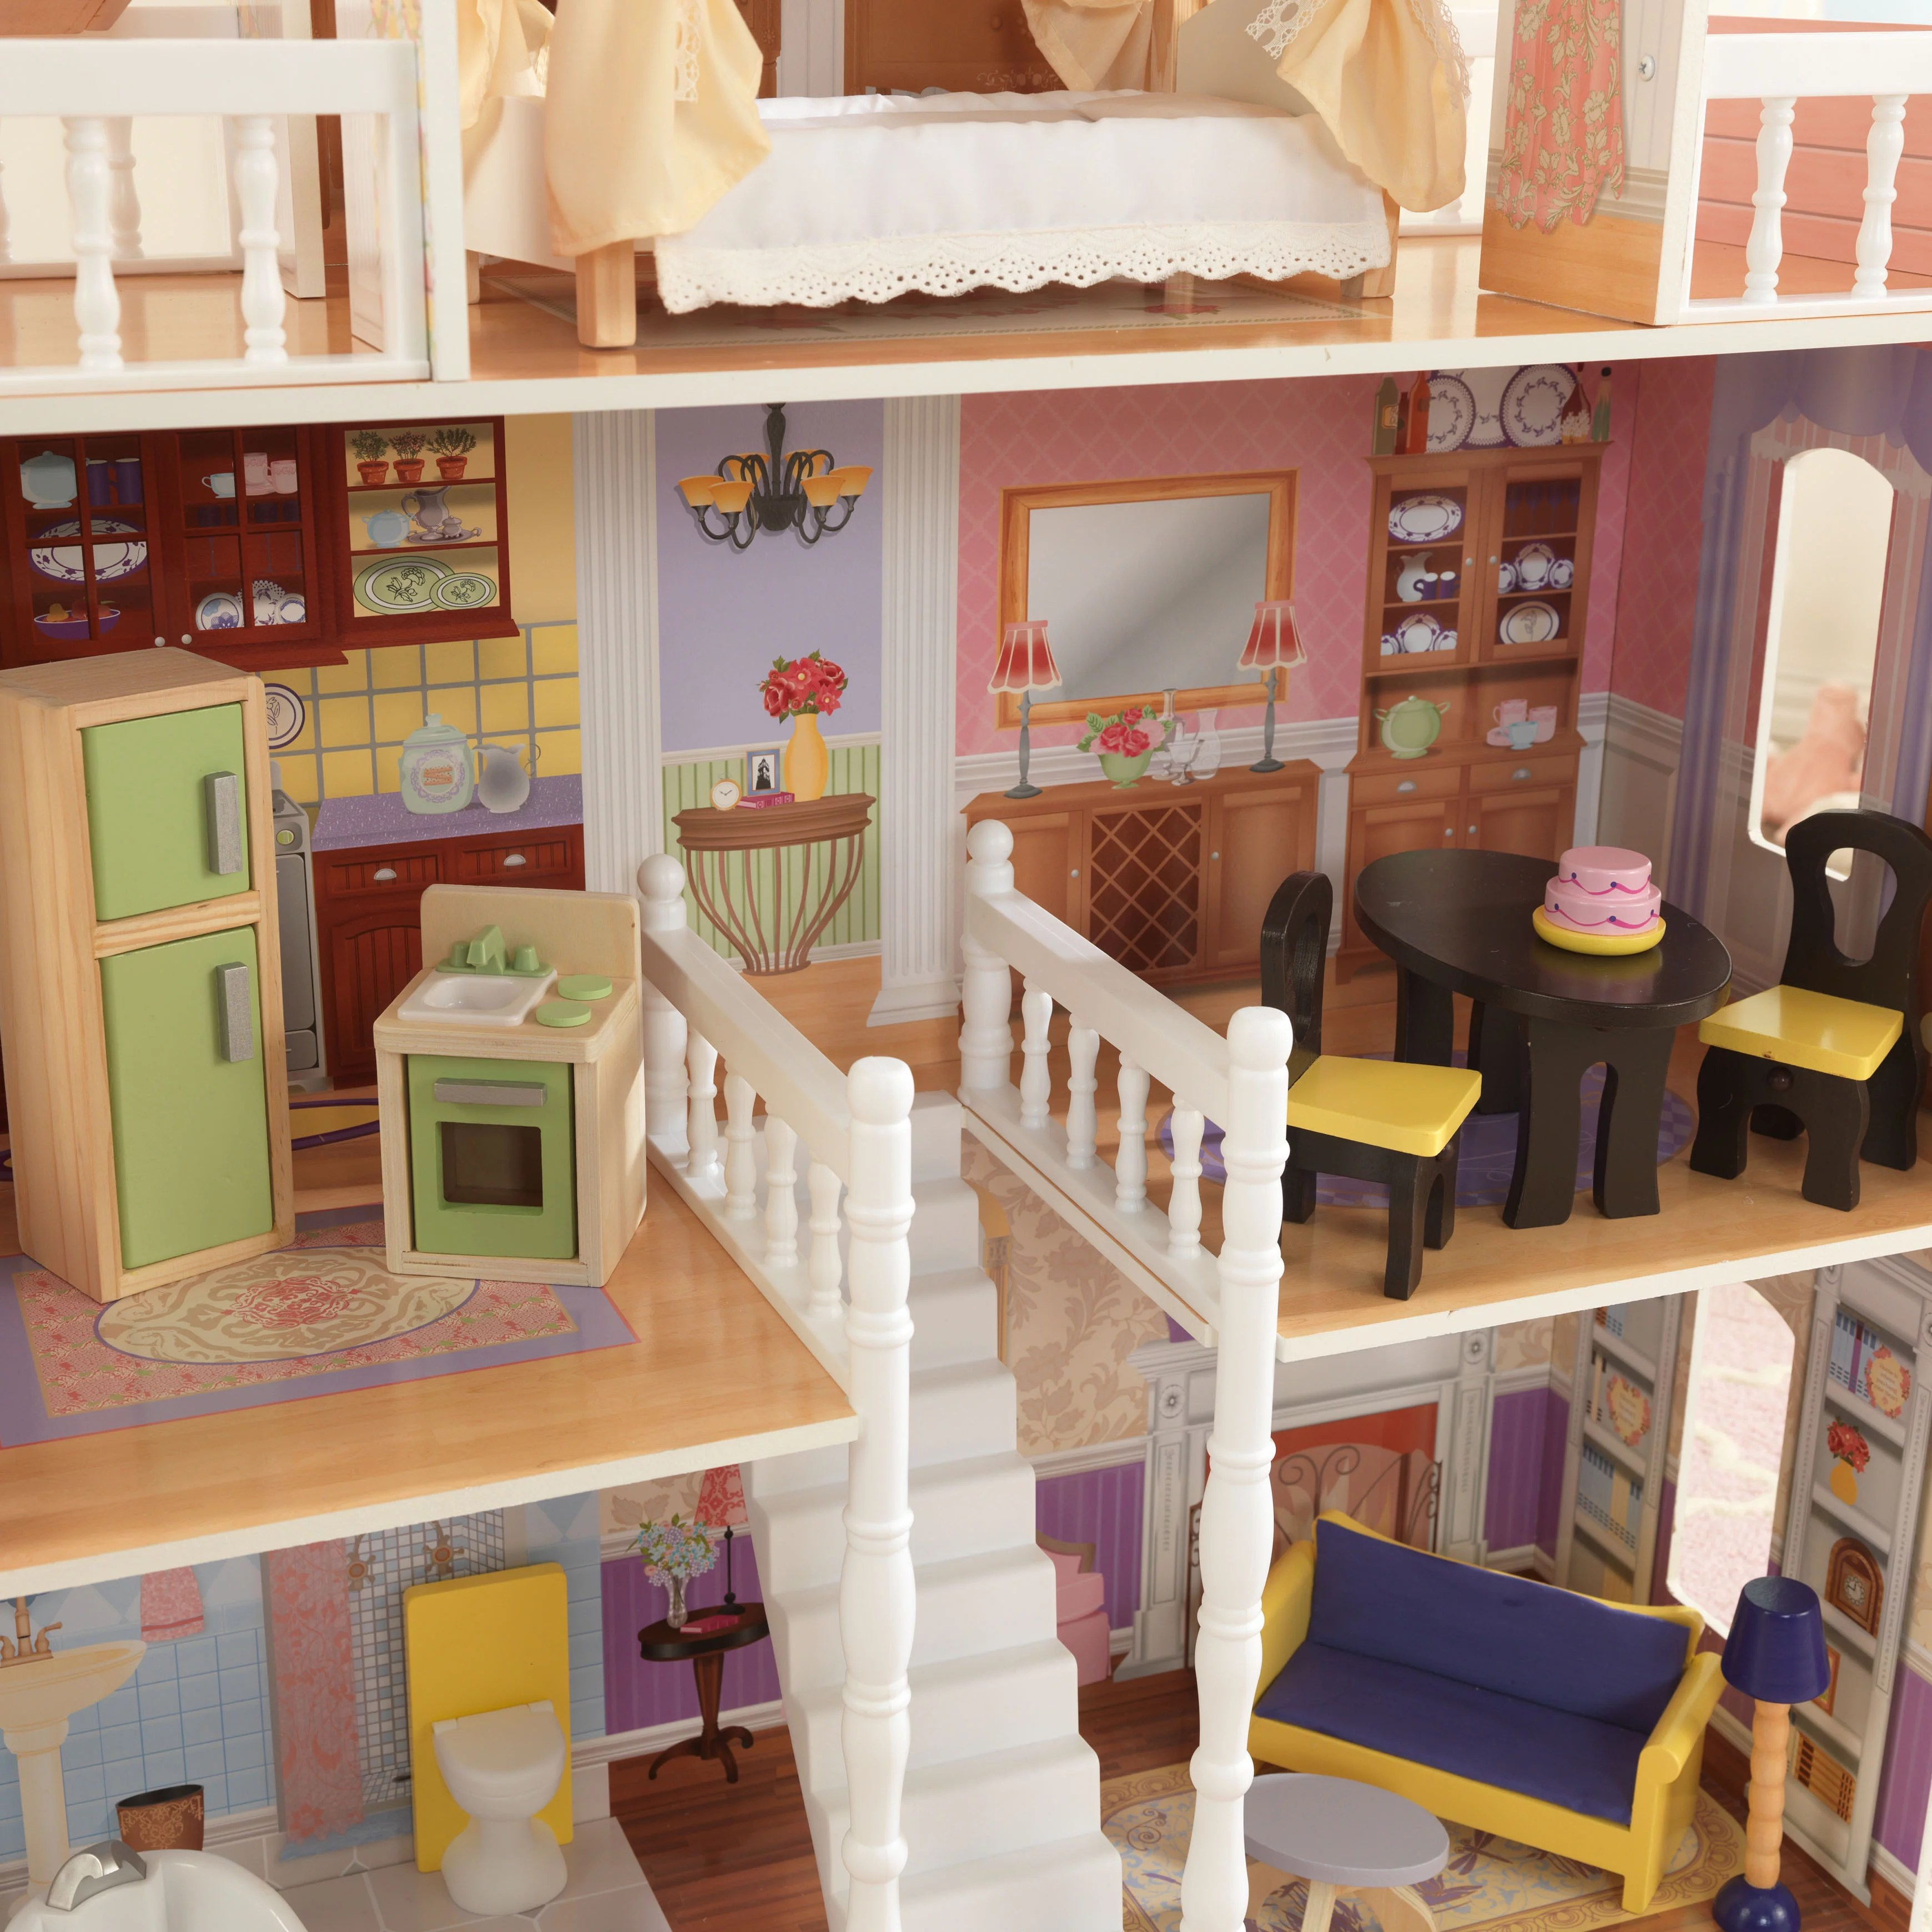 kidkraft doll high chair hanging outdoor chairs dollhouse house furniture girls mansion toy play